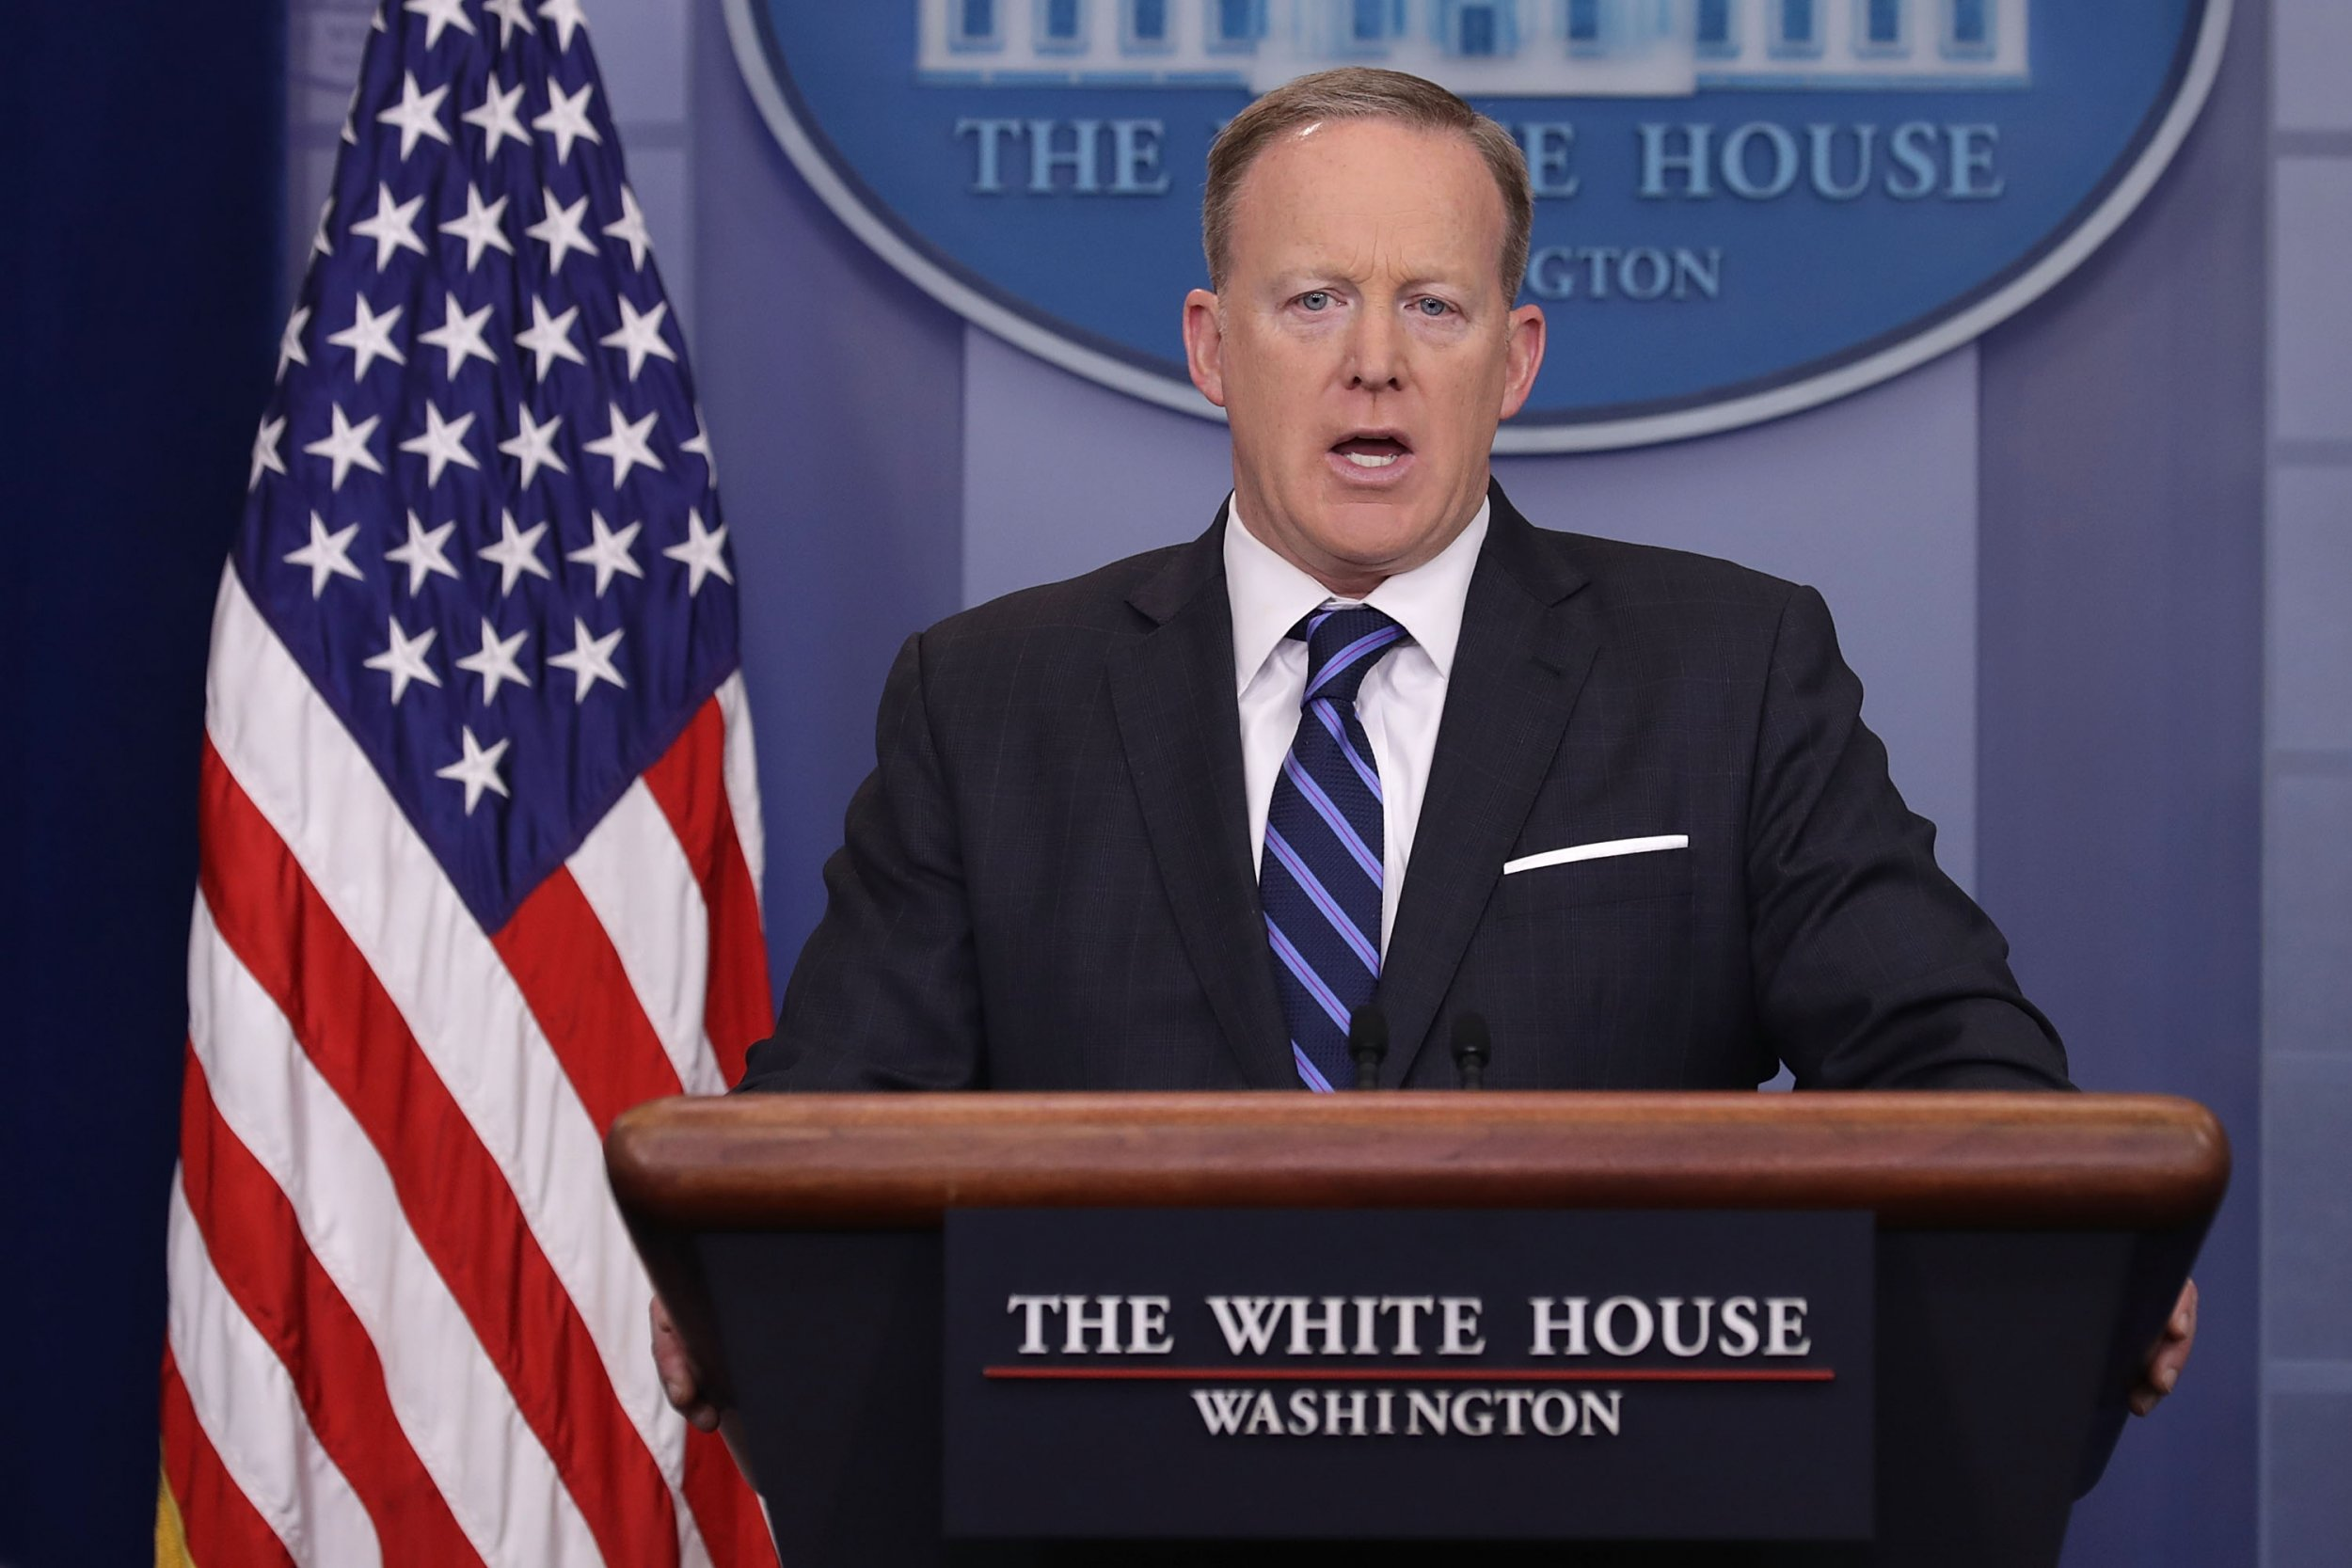 Sean Spicer's White House briefing